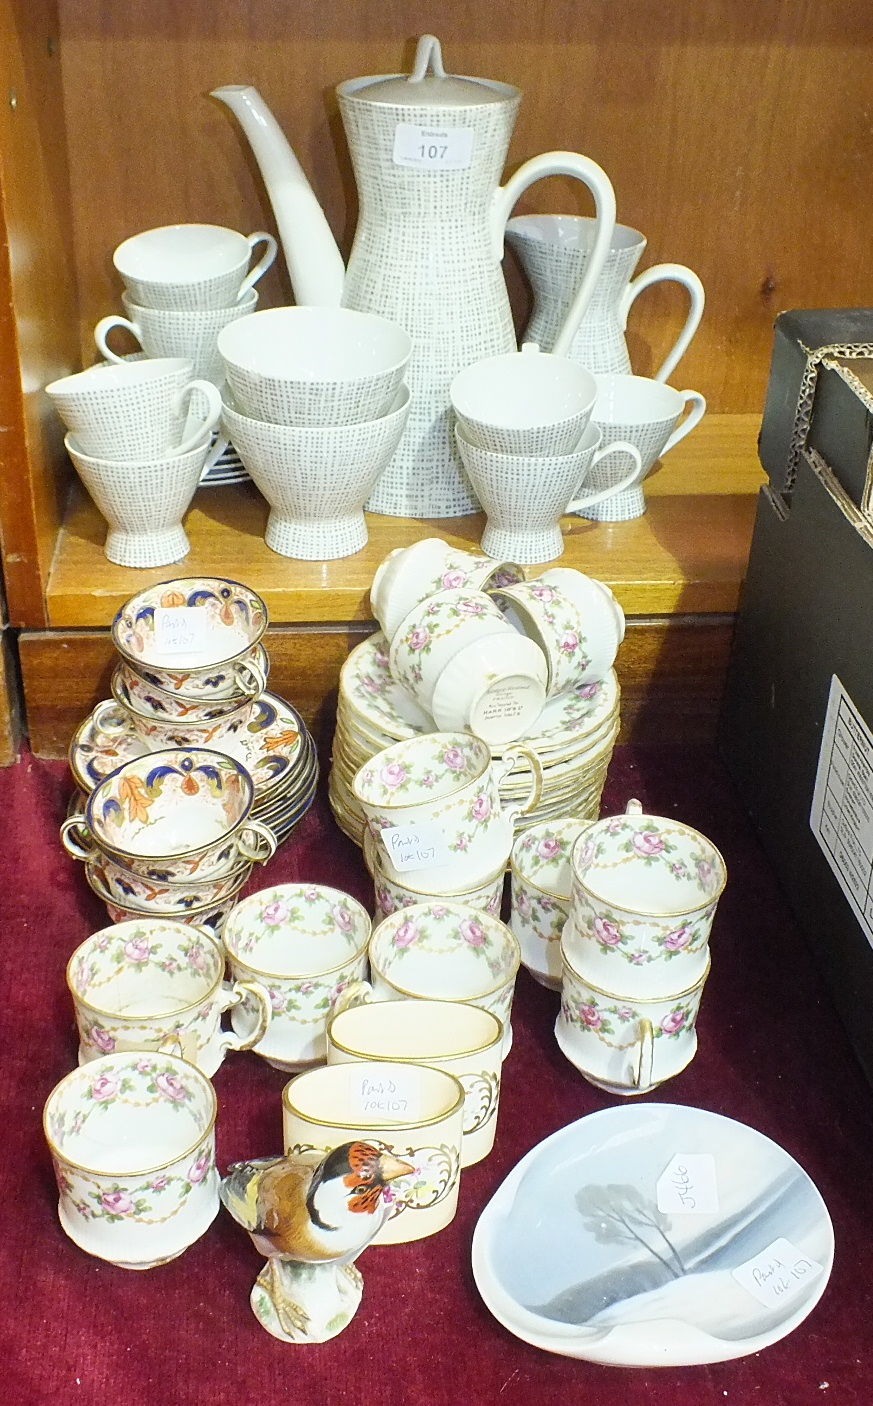 Lot 107 - A Rosenthal 1950's/60's part tea service of waisted form decorated grey on white grid pattern,